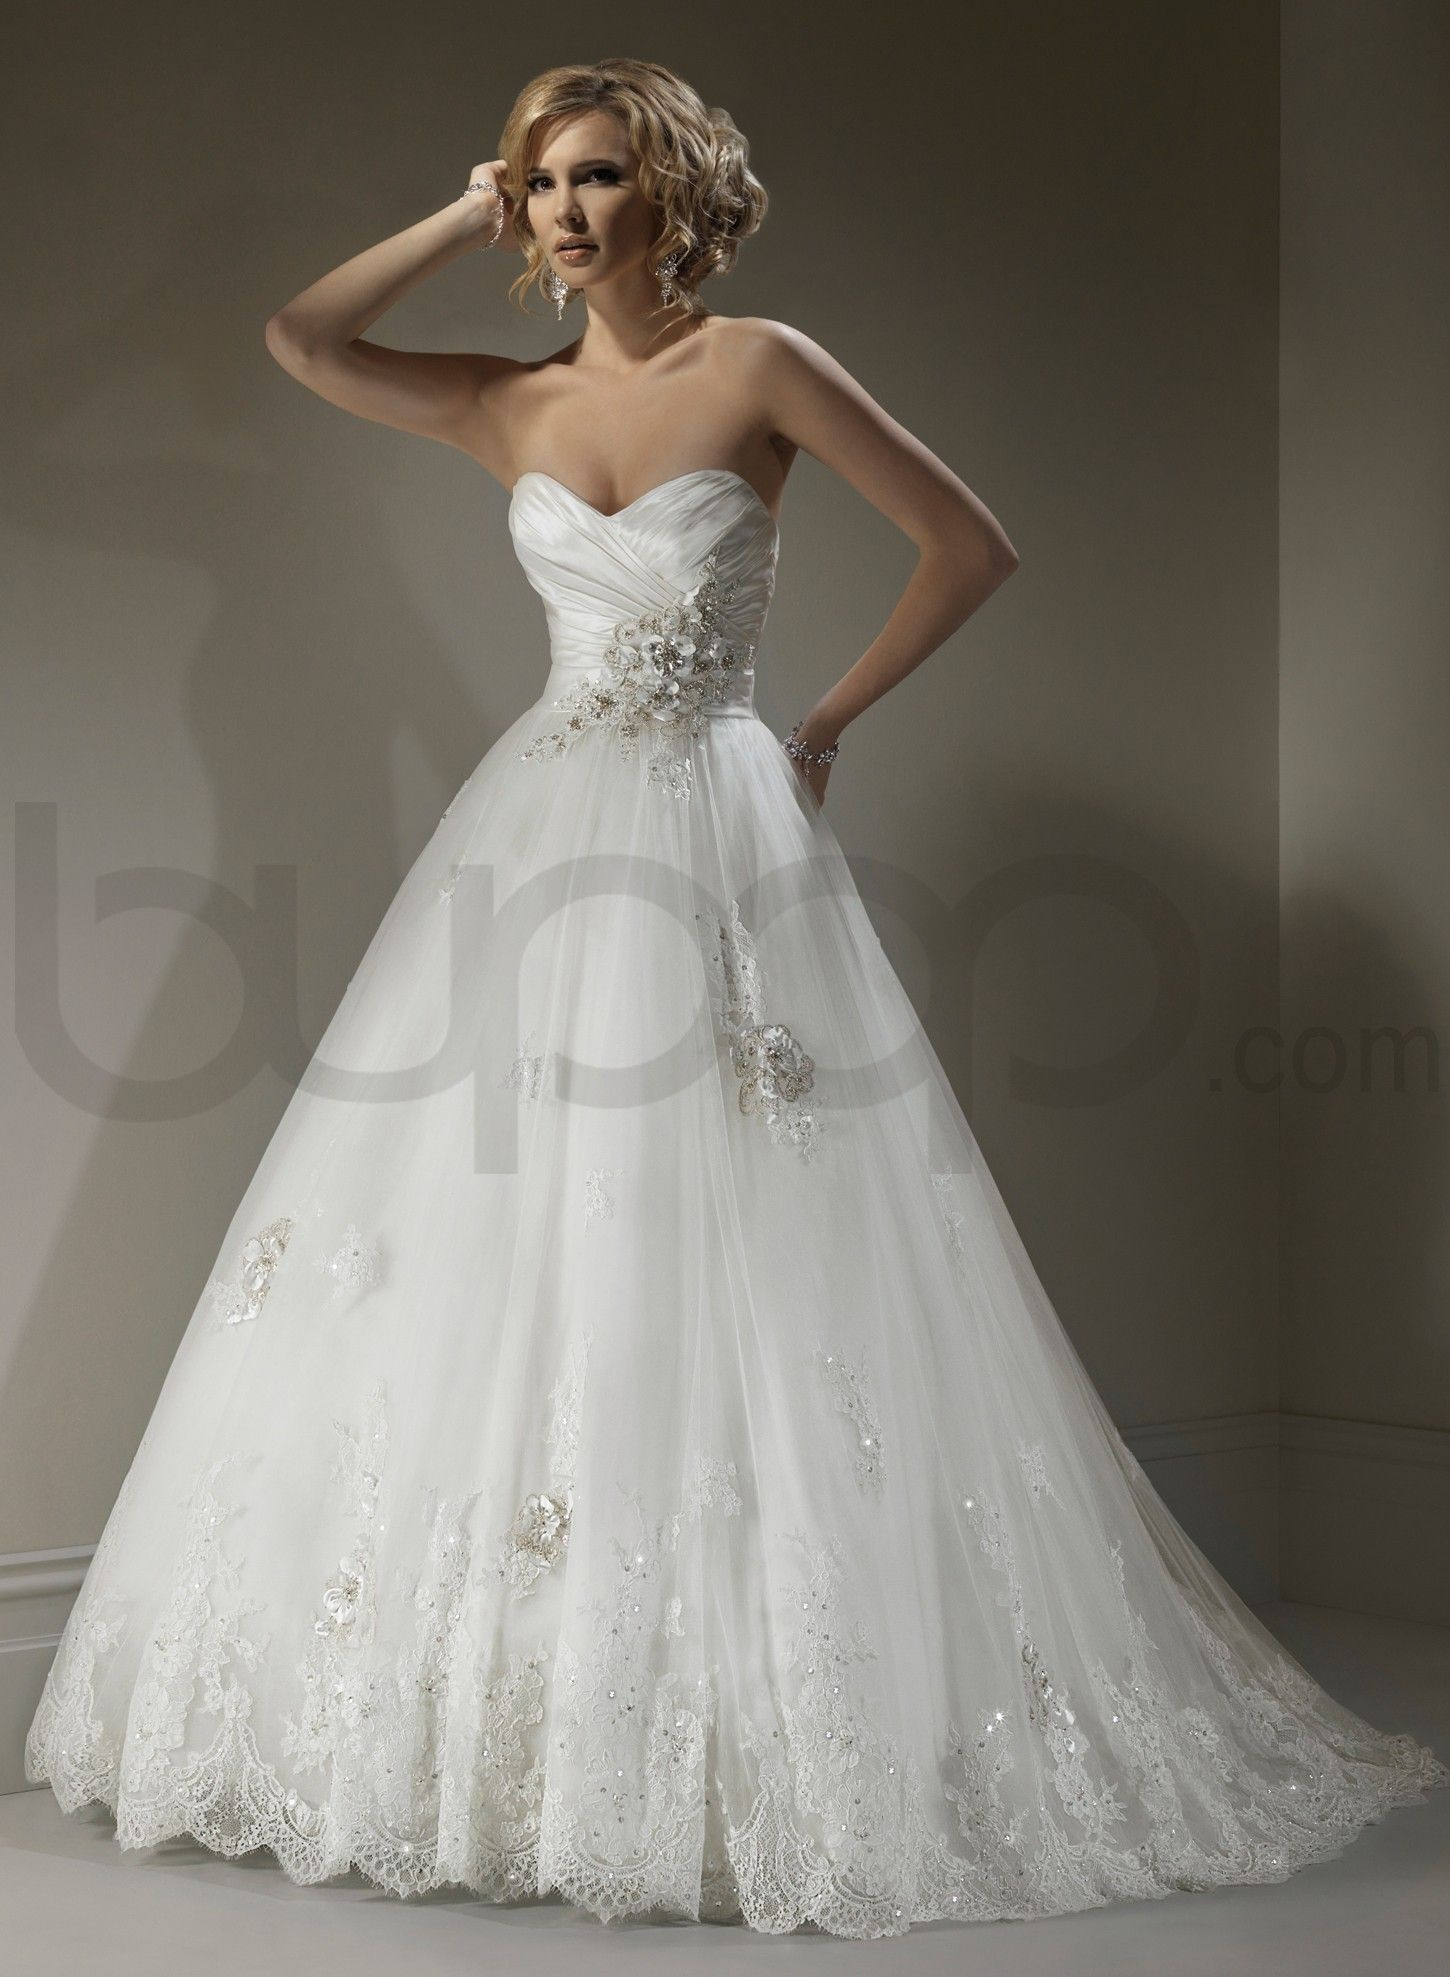 Wedding Sweetheart Neckline Dress sweetheart neckline dresses photo album fashion trends and models wedding ball gown ocodeacom wedding